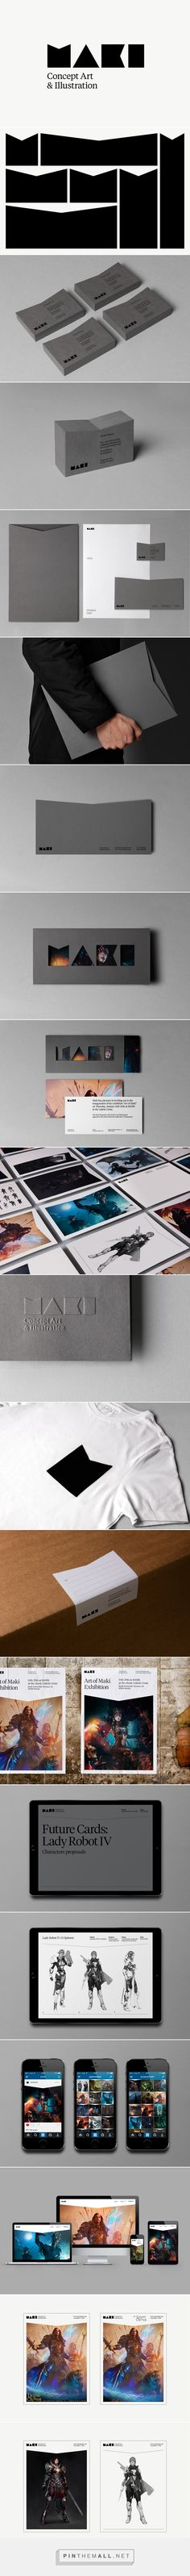 Maki on Behance... - a grouped images picture - Pin Them All